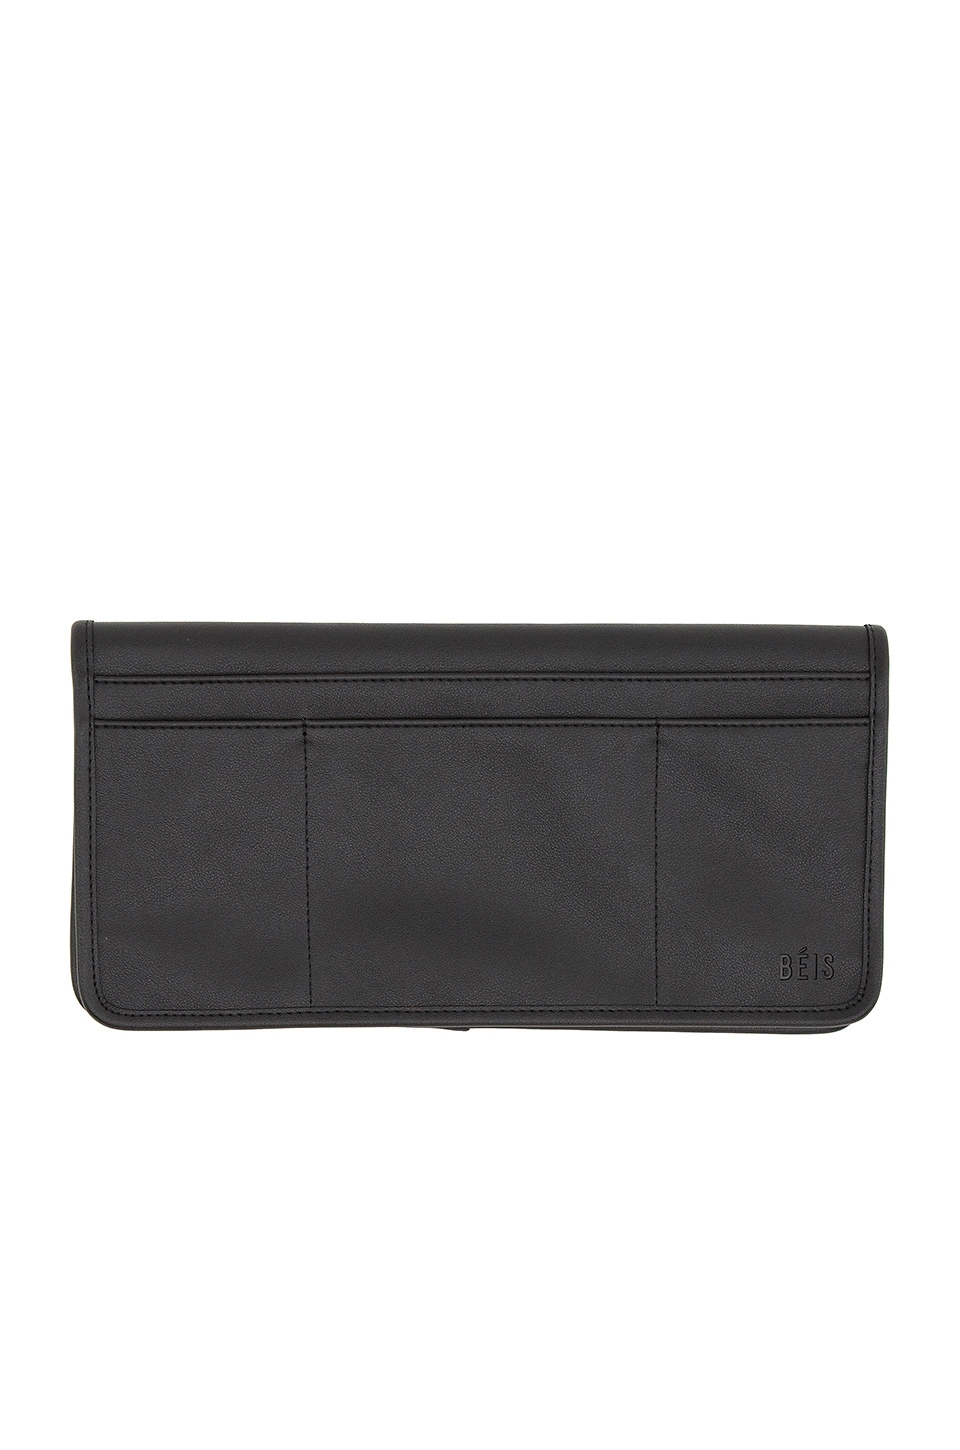 BEIS The Seatback Organizer in Black